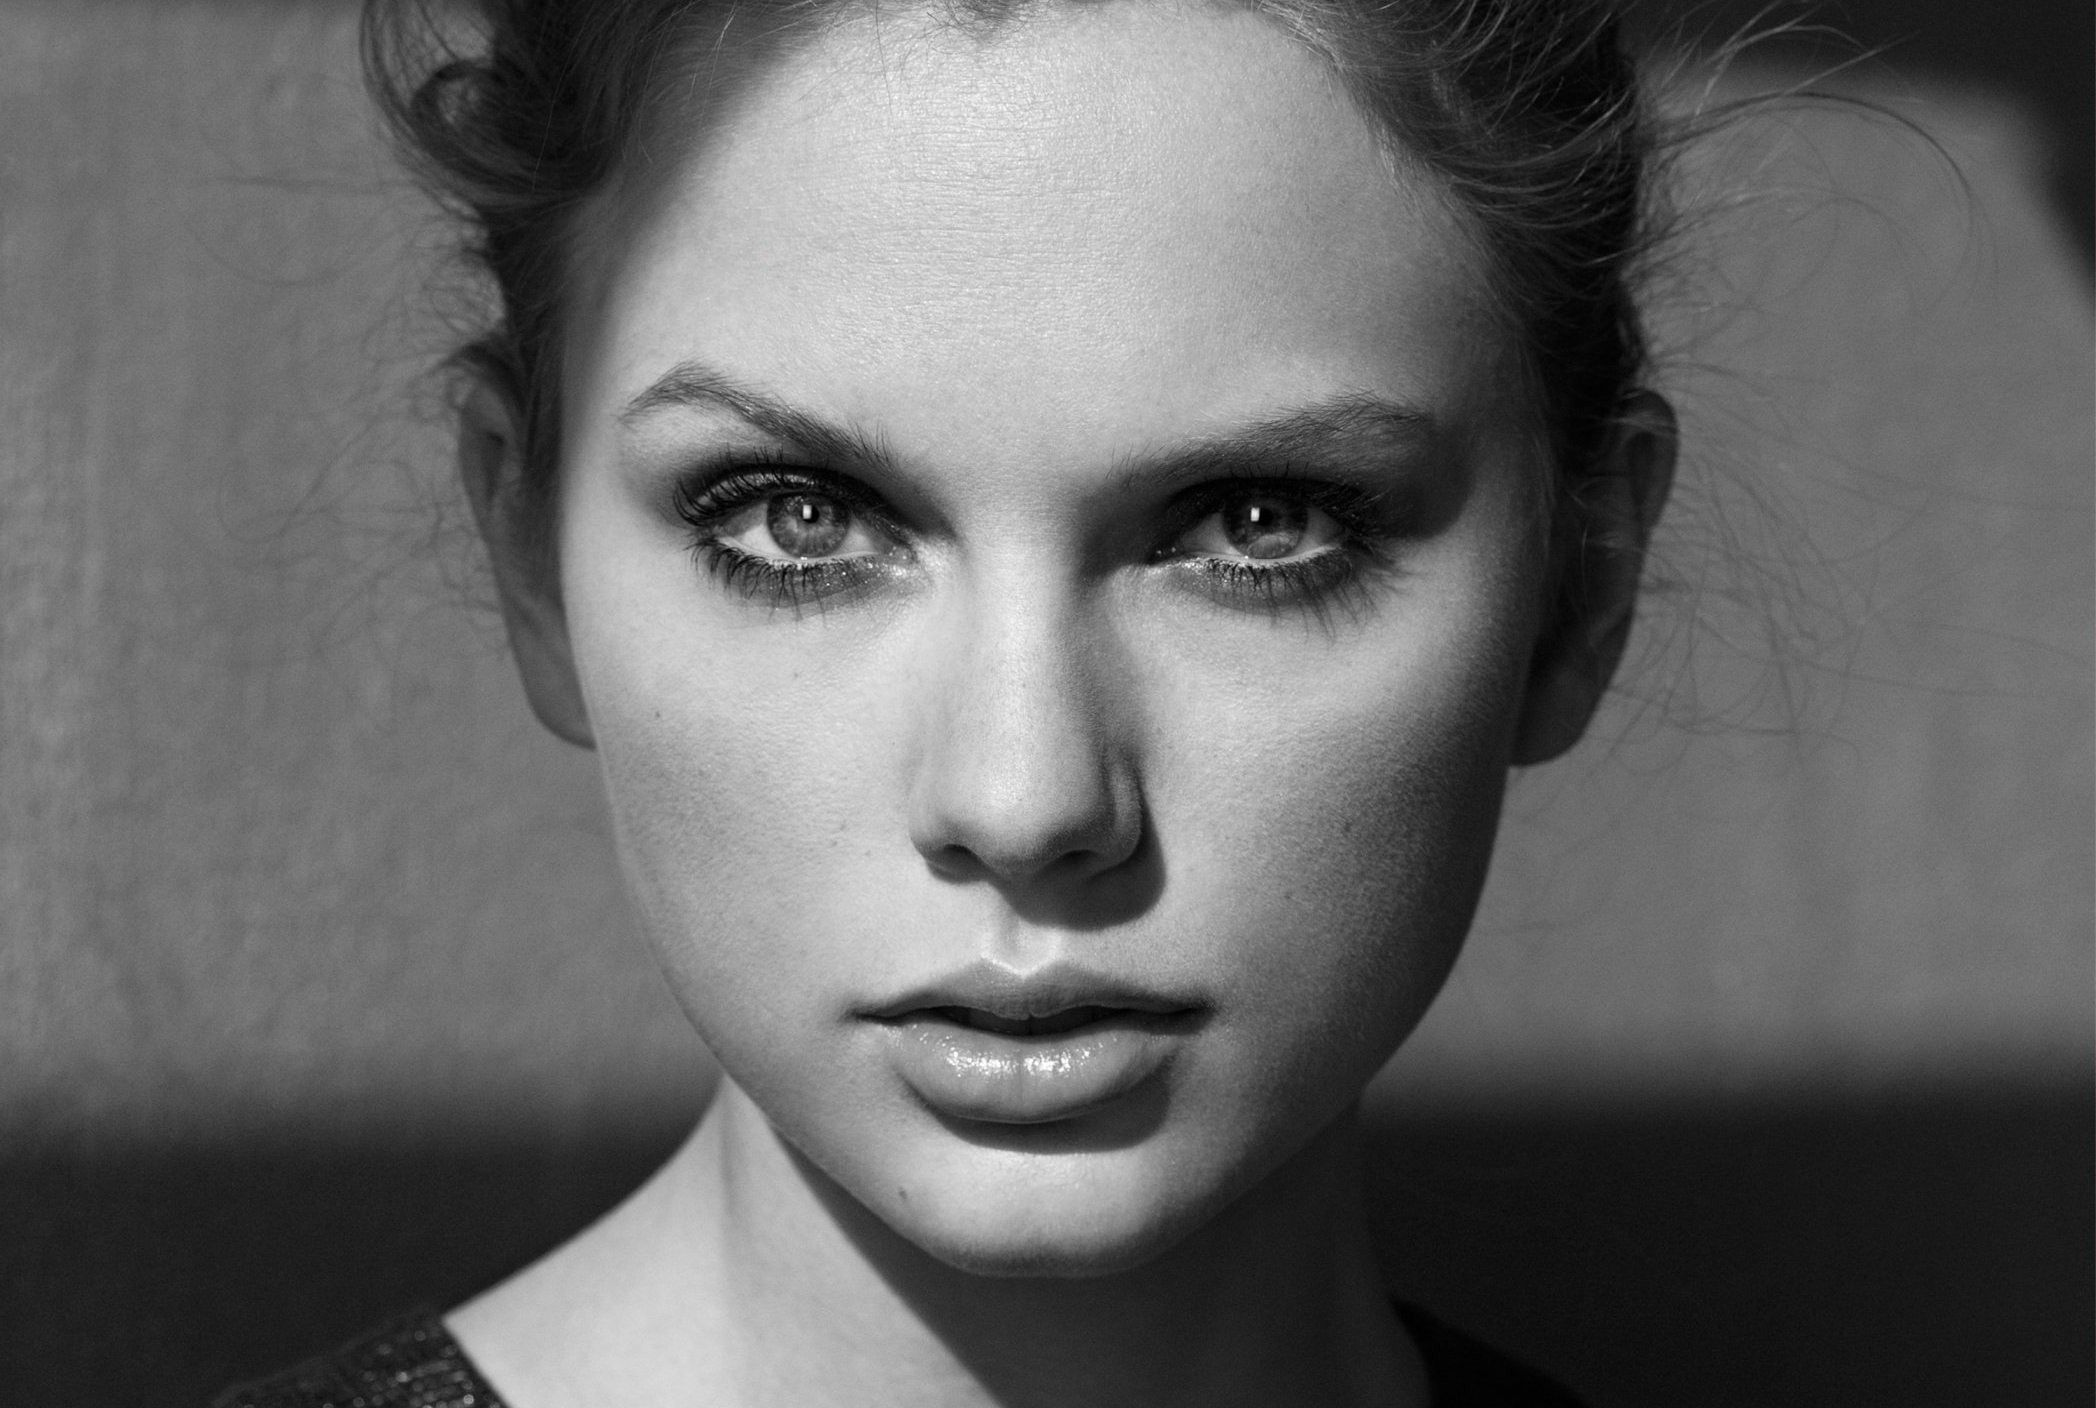 taylor-swift-faces-grayscale-2942422-2096x1408.jpg (2096×1408)